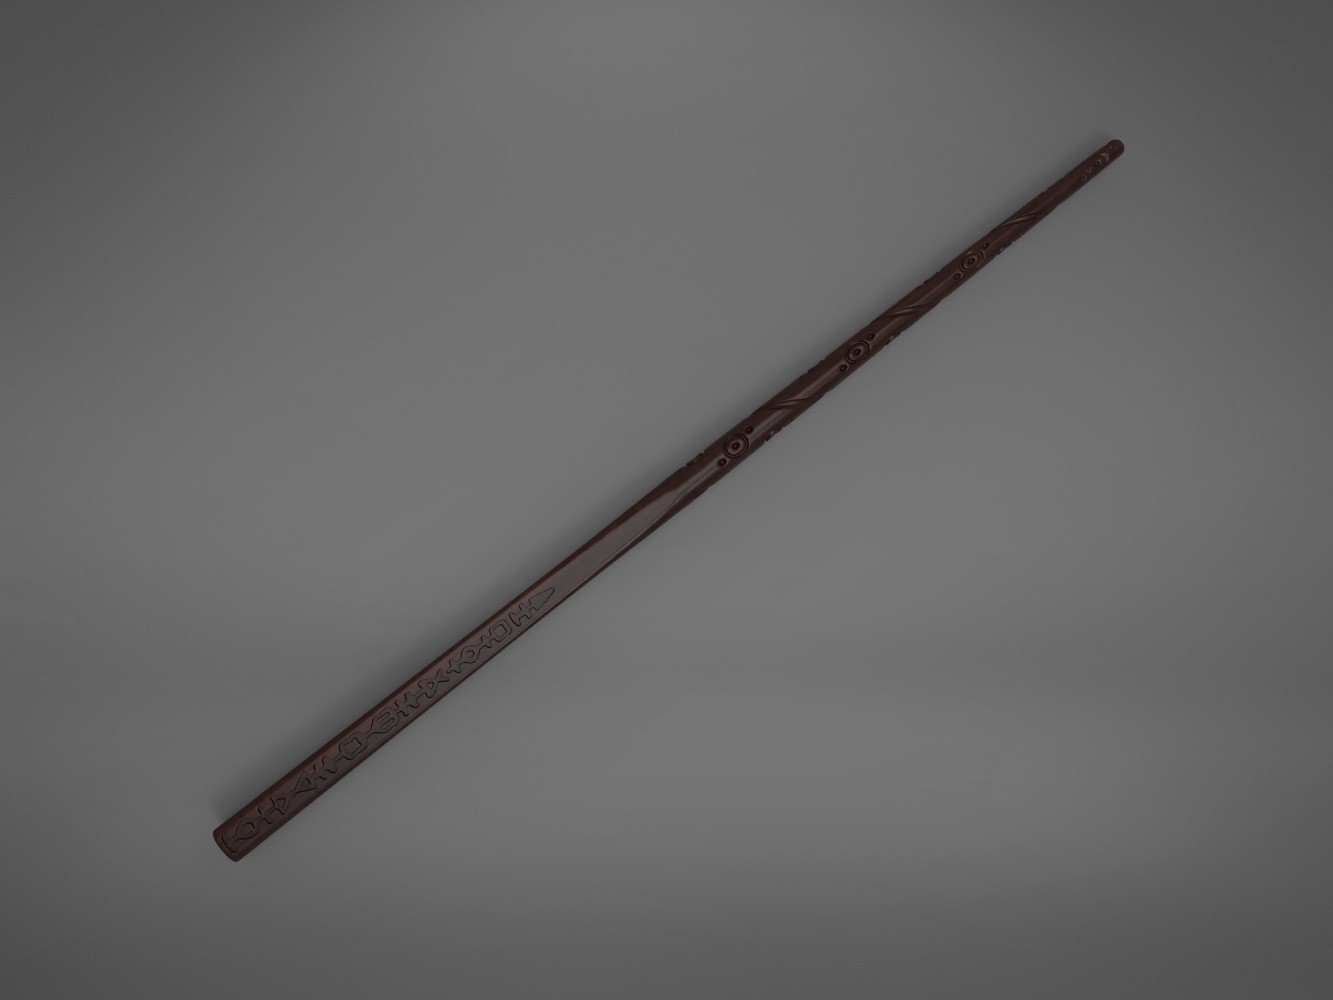 Black-top_perspective.632.jpg Download STL file Sirius Black wand - Harry Potter films 3D print model • 3D print object, 3D-mon